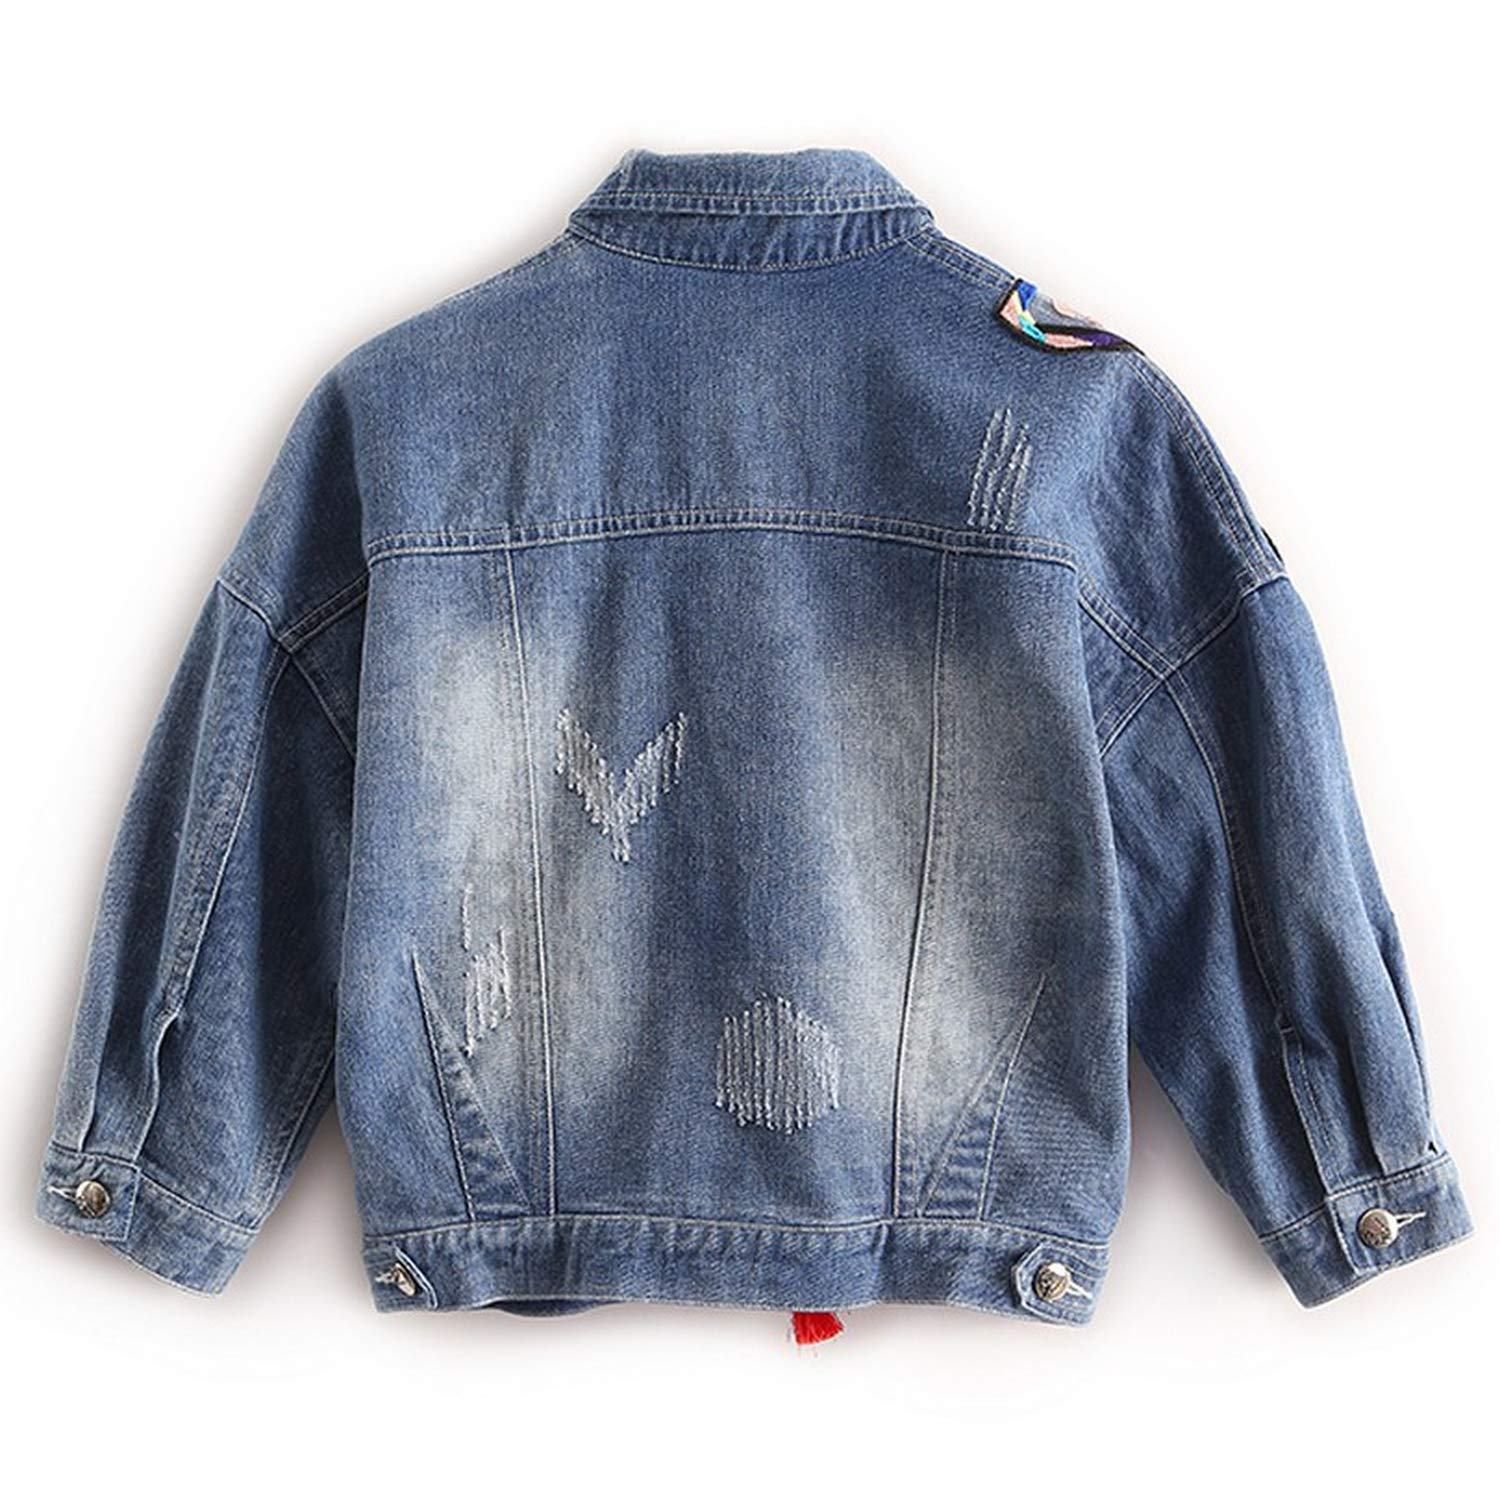 Chiced Colorful Butterfly Embroidery Ladies Jean Jackets Womens Denim Coats with Tassel